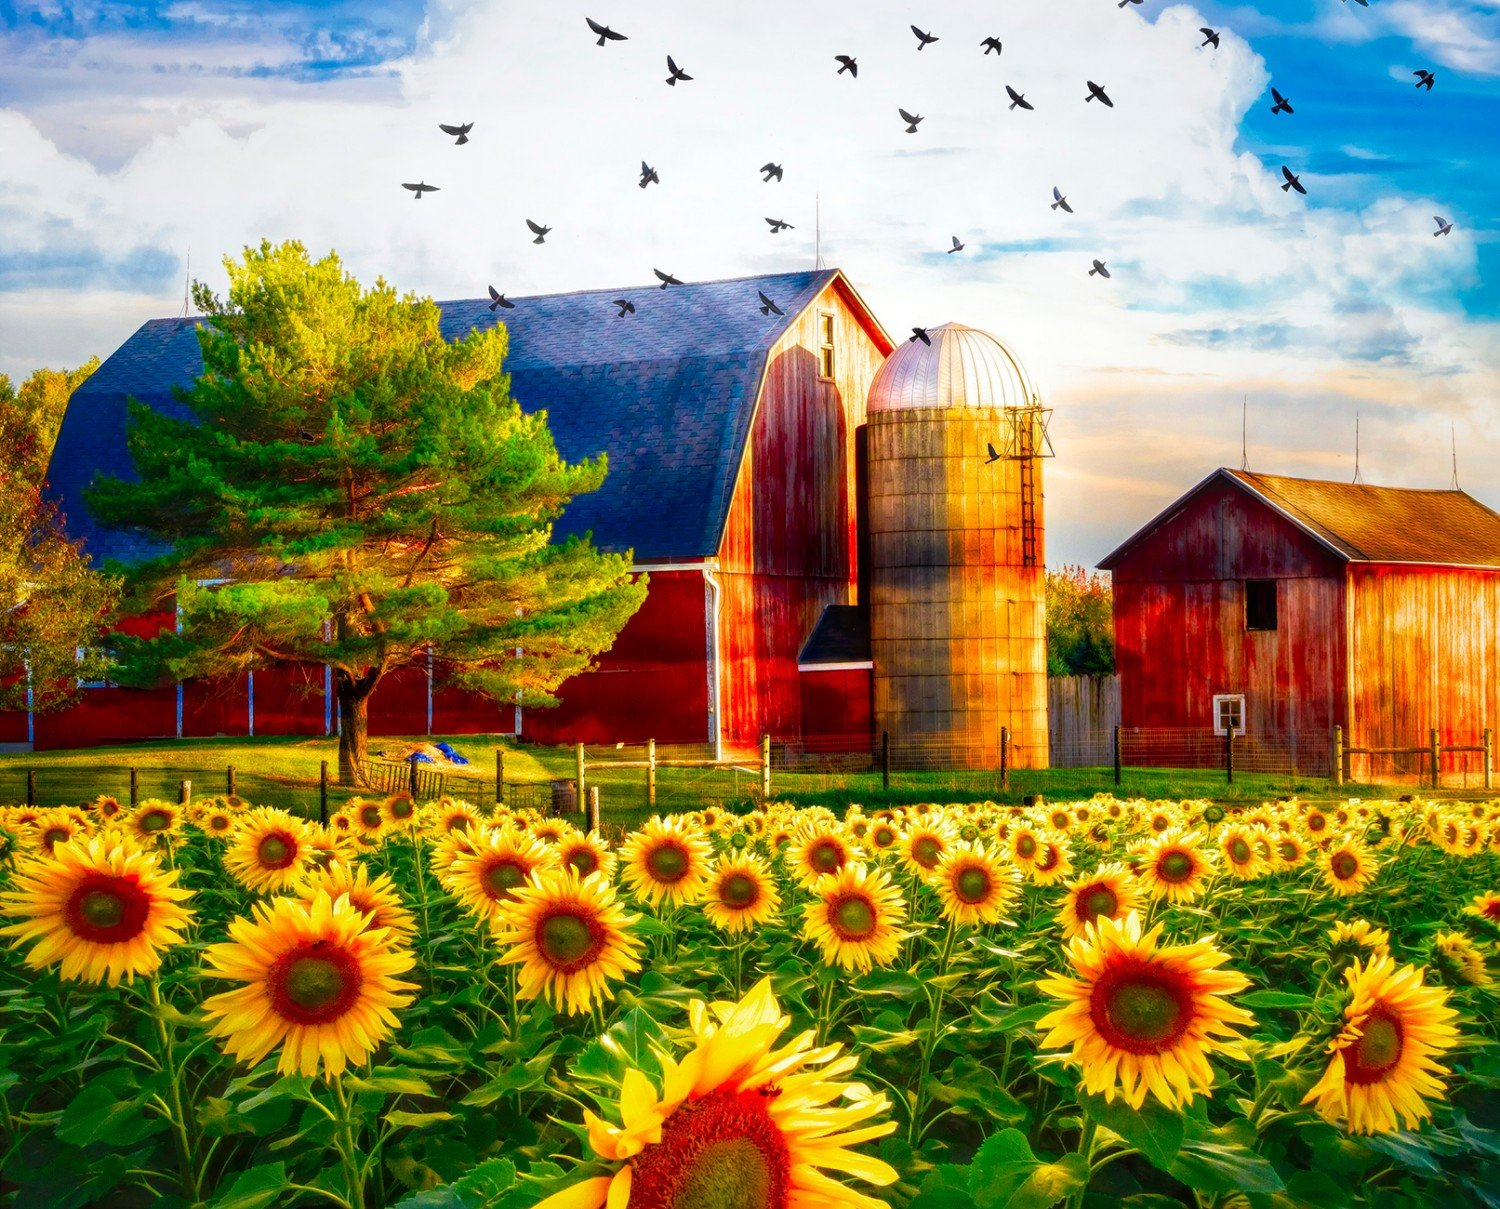 Sunflowers & The Barn Digital Panel by David Textiles AL38900C1